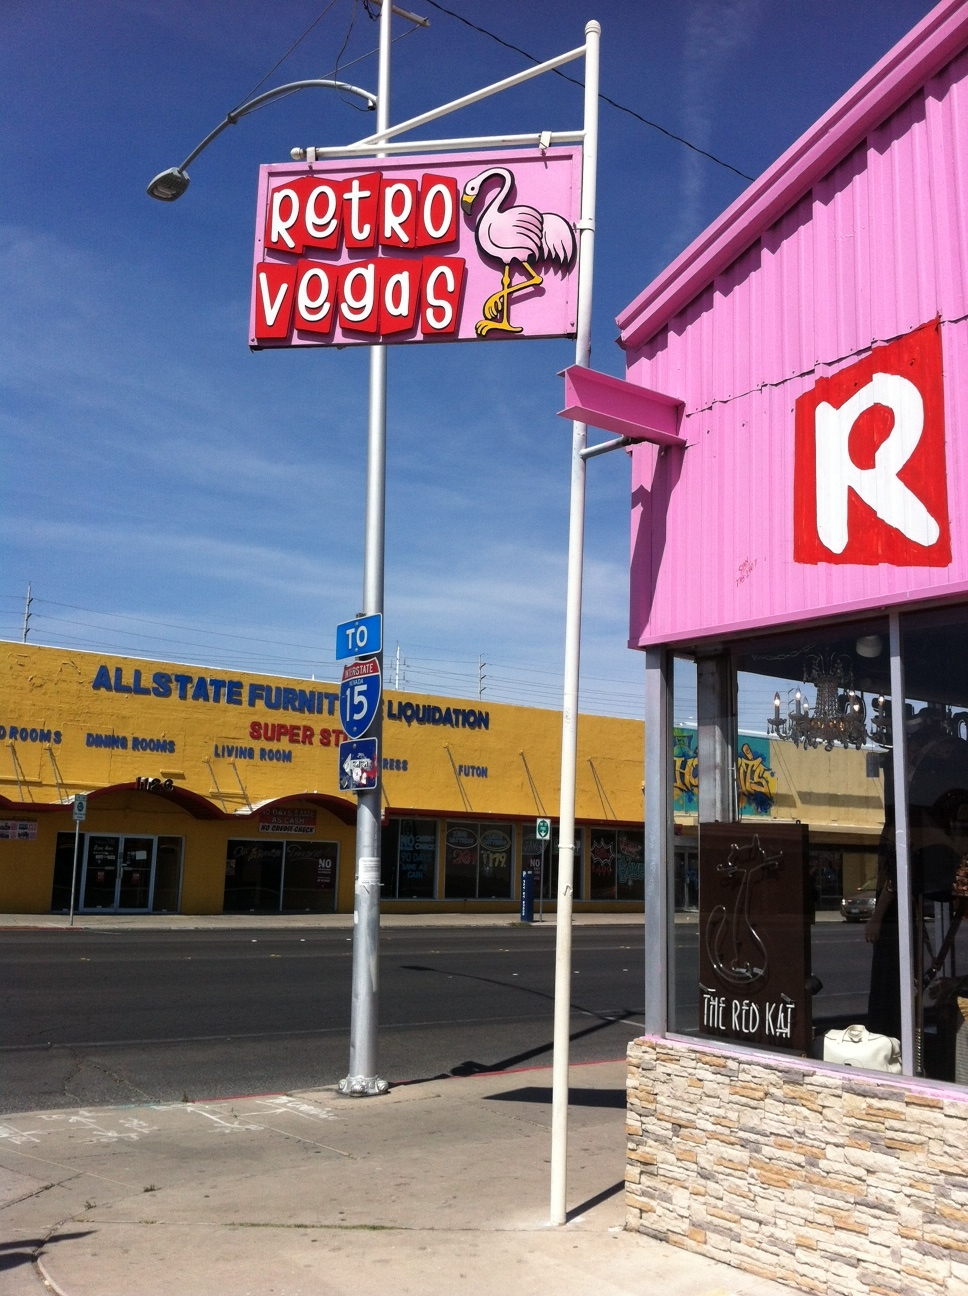 Retro Vegas (aka Vegas' other pink flamingo) is one of the best vintage stores we have visited in the past few years.